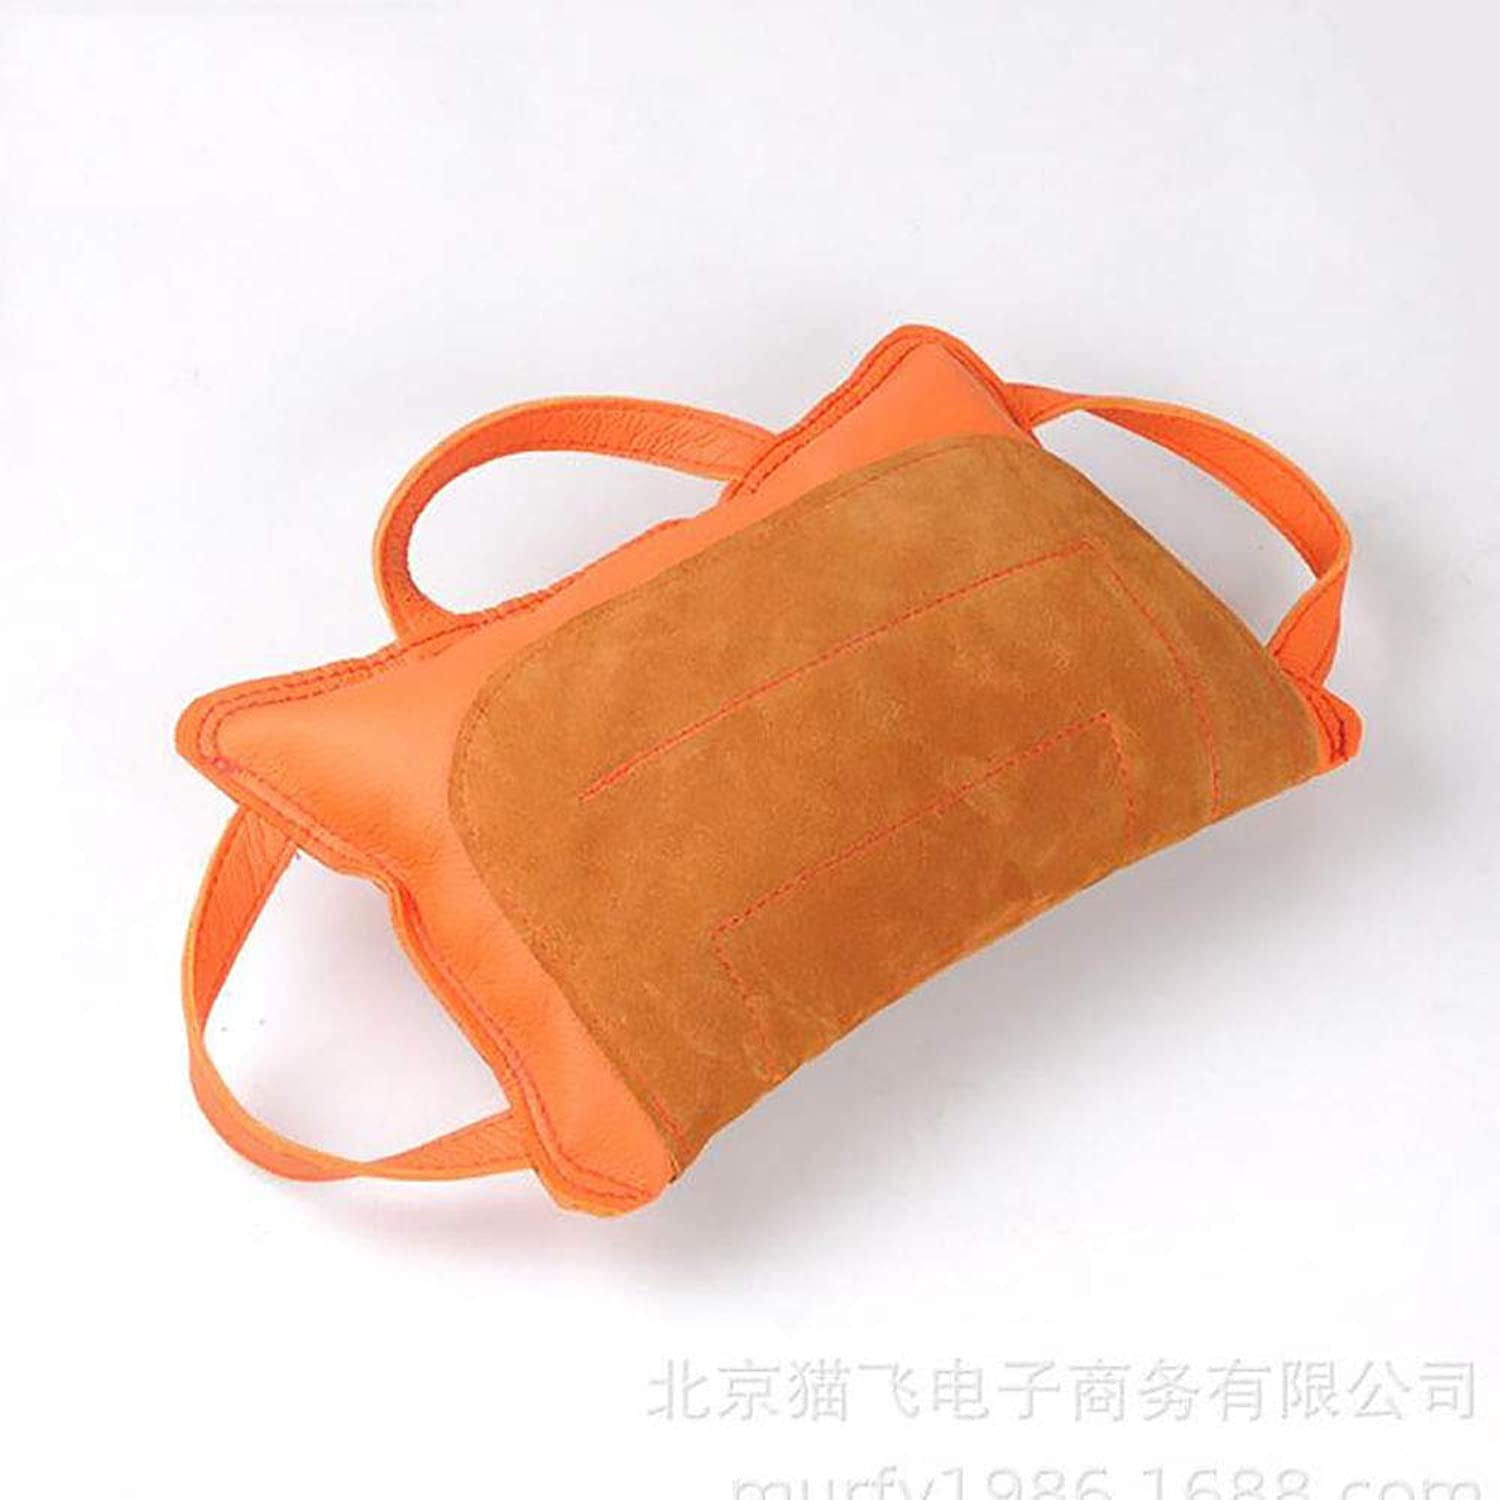 Pet PU Leather bite Pillow Dog Bite Arm Predection Sleeve with 3 Handles Durable Training Biting Tug Toy for Medium Large Dogs,orange